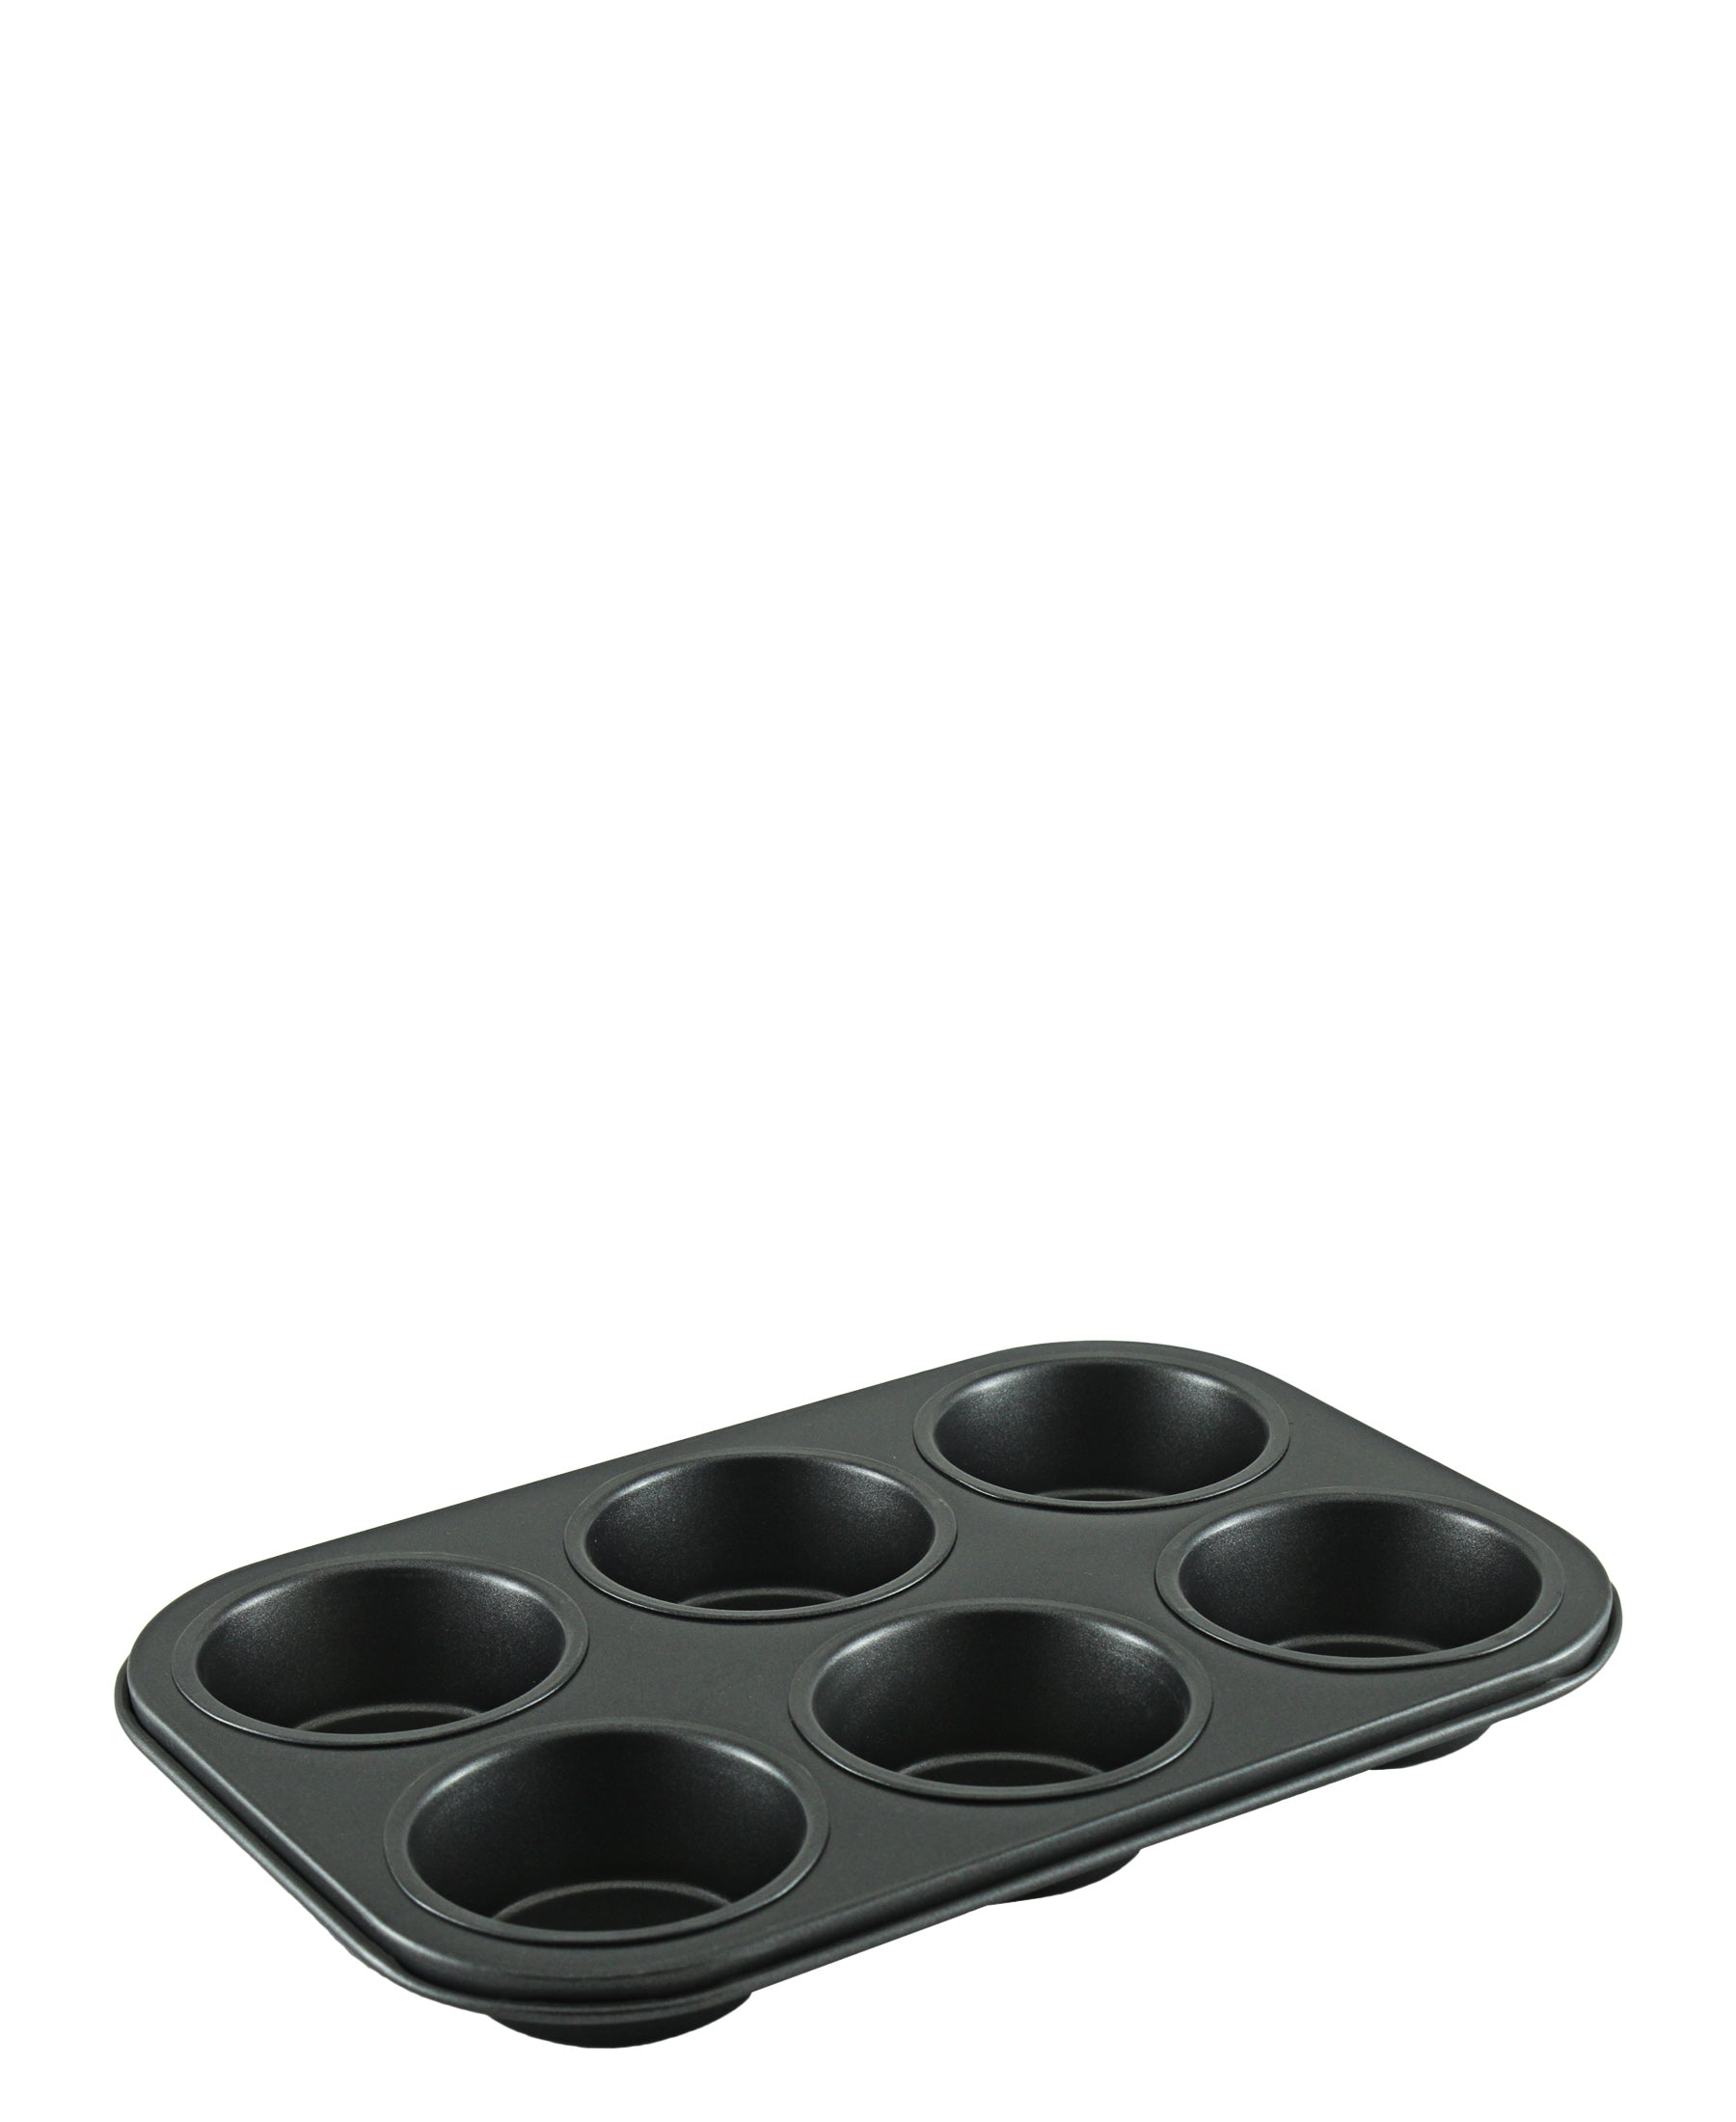 Metalix 6 Cup Muffin Pan - Black